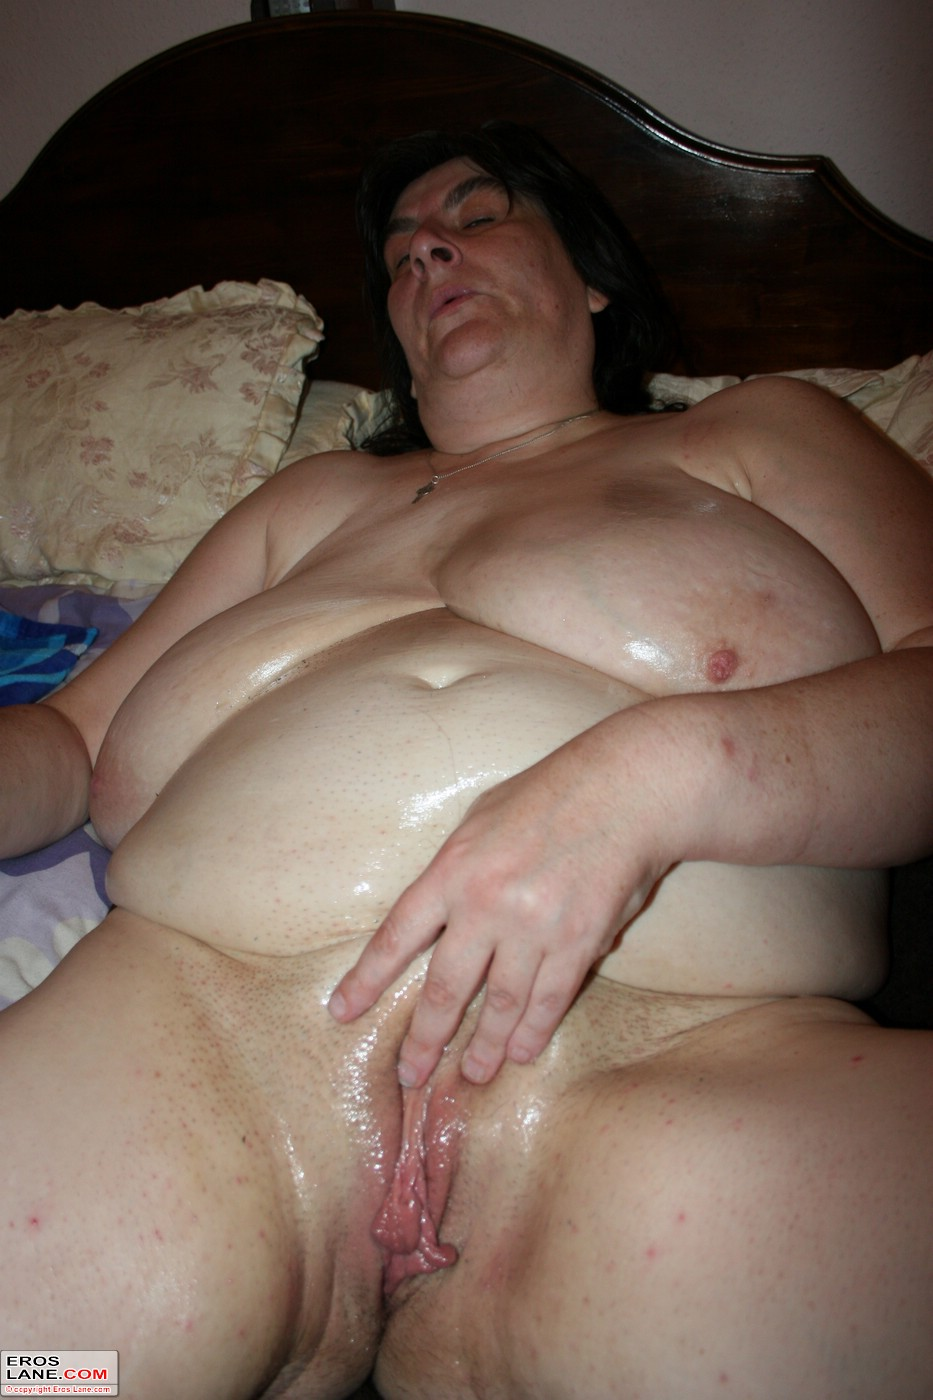 Archive Of Old Women Mature Fat Big Tits  Pussy Lips-7688